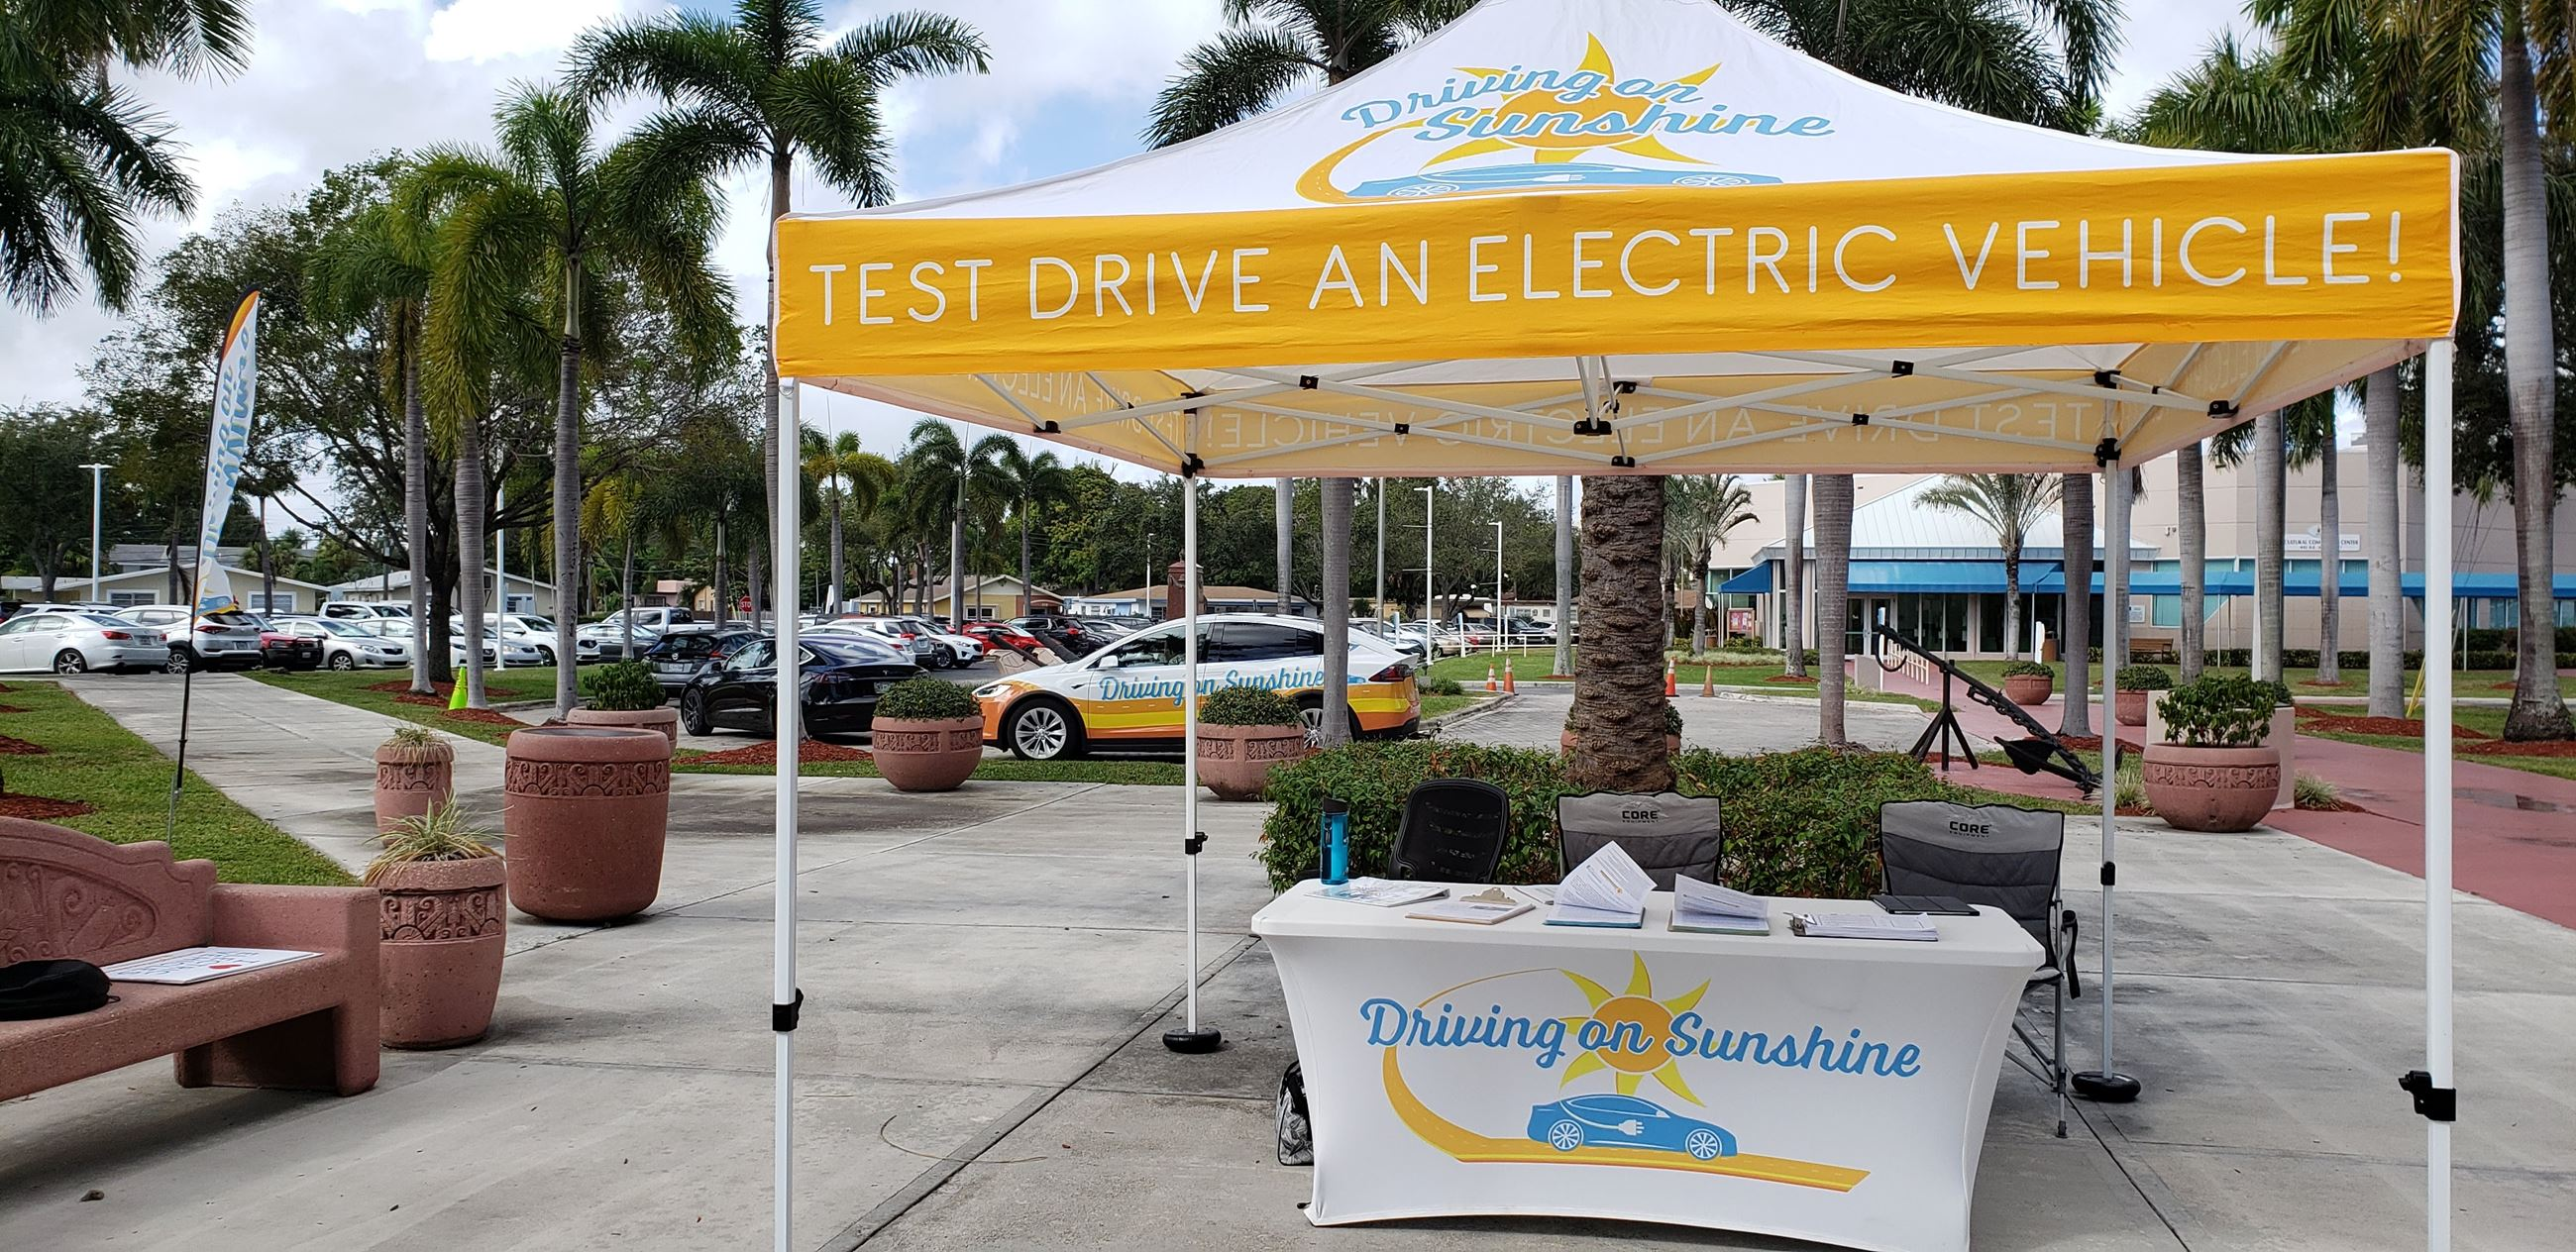 pop up tent that says test drive an electric vehicle